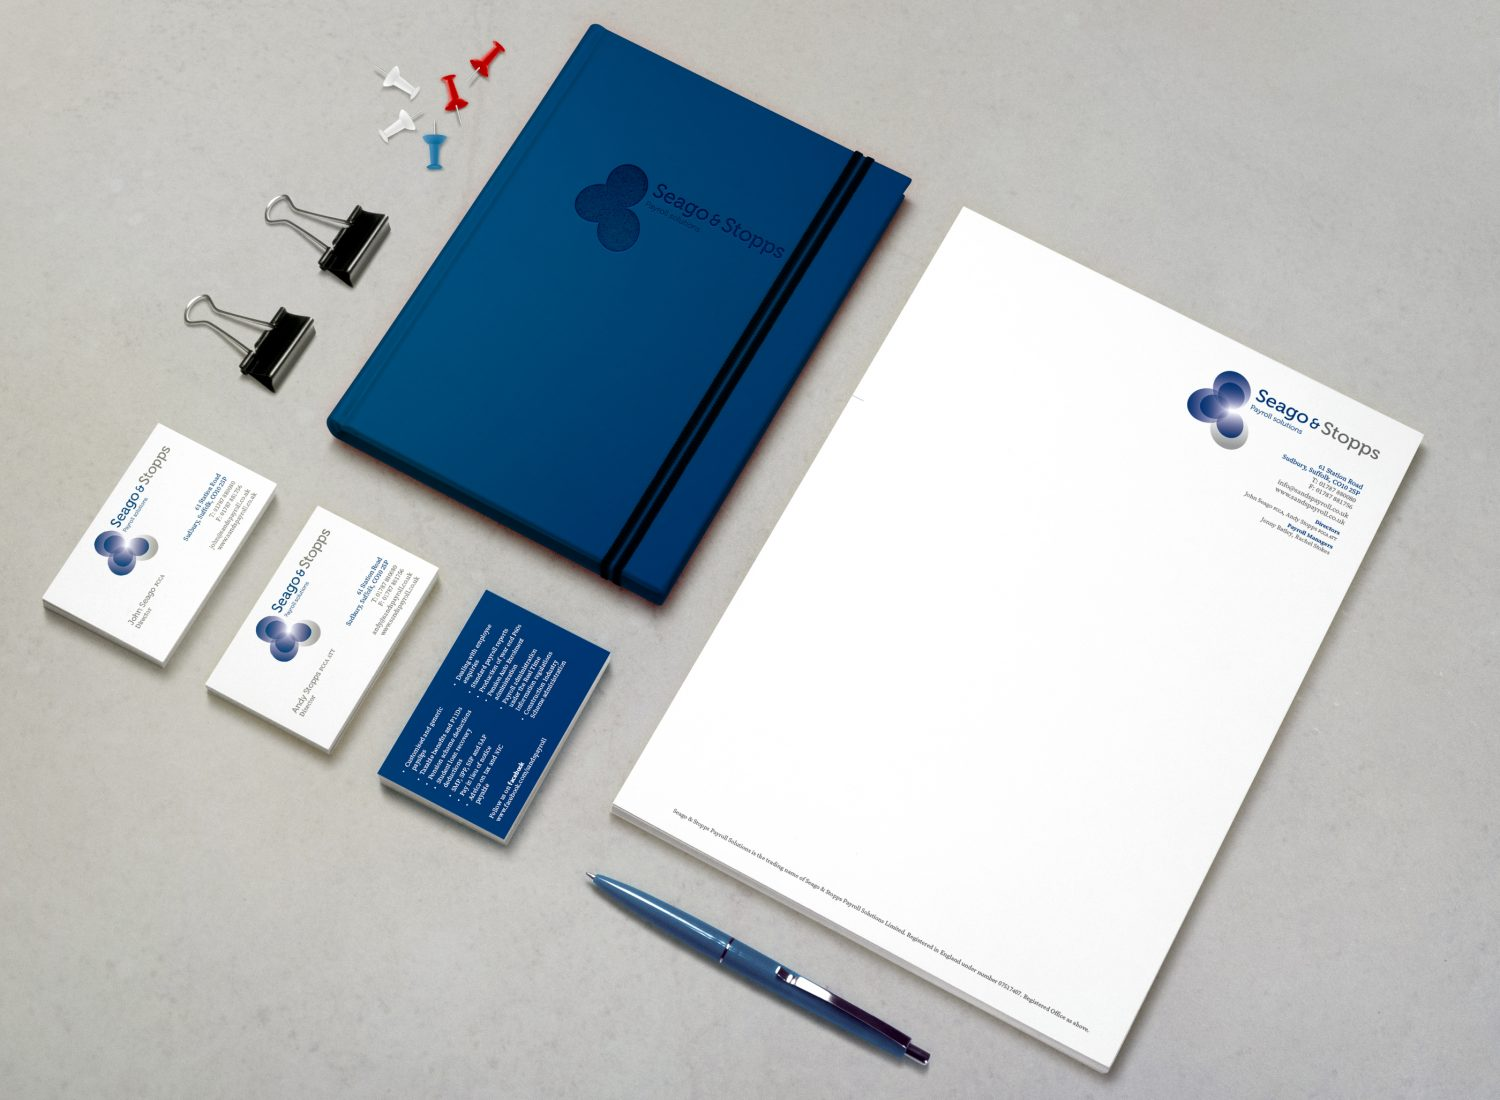 Stationery design and print services